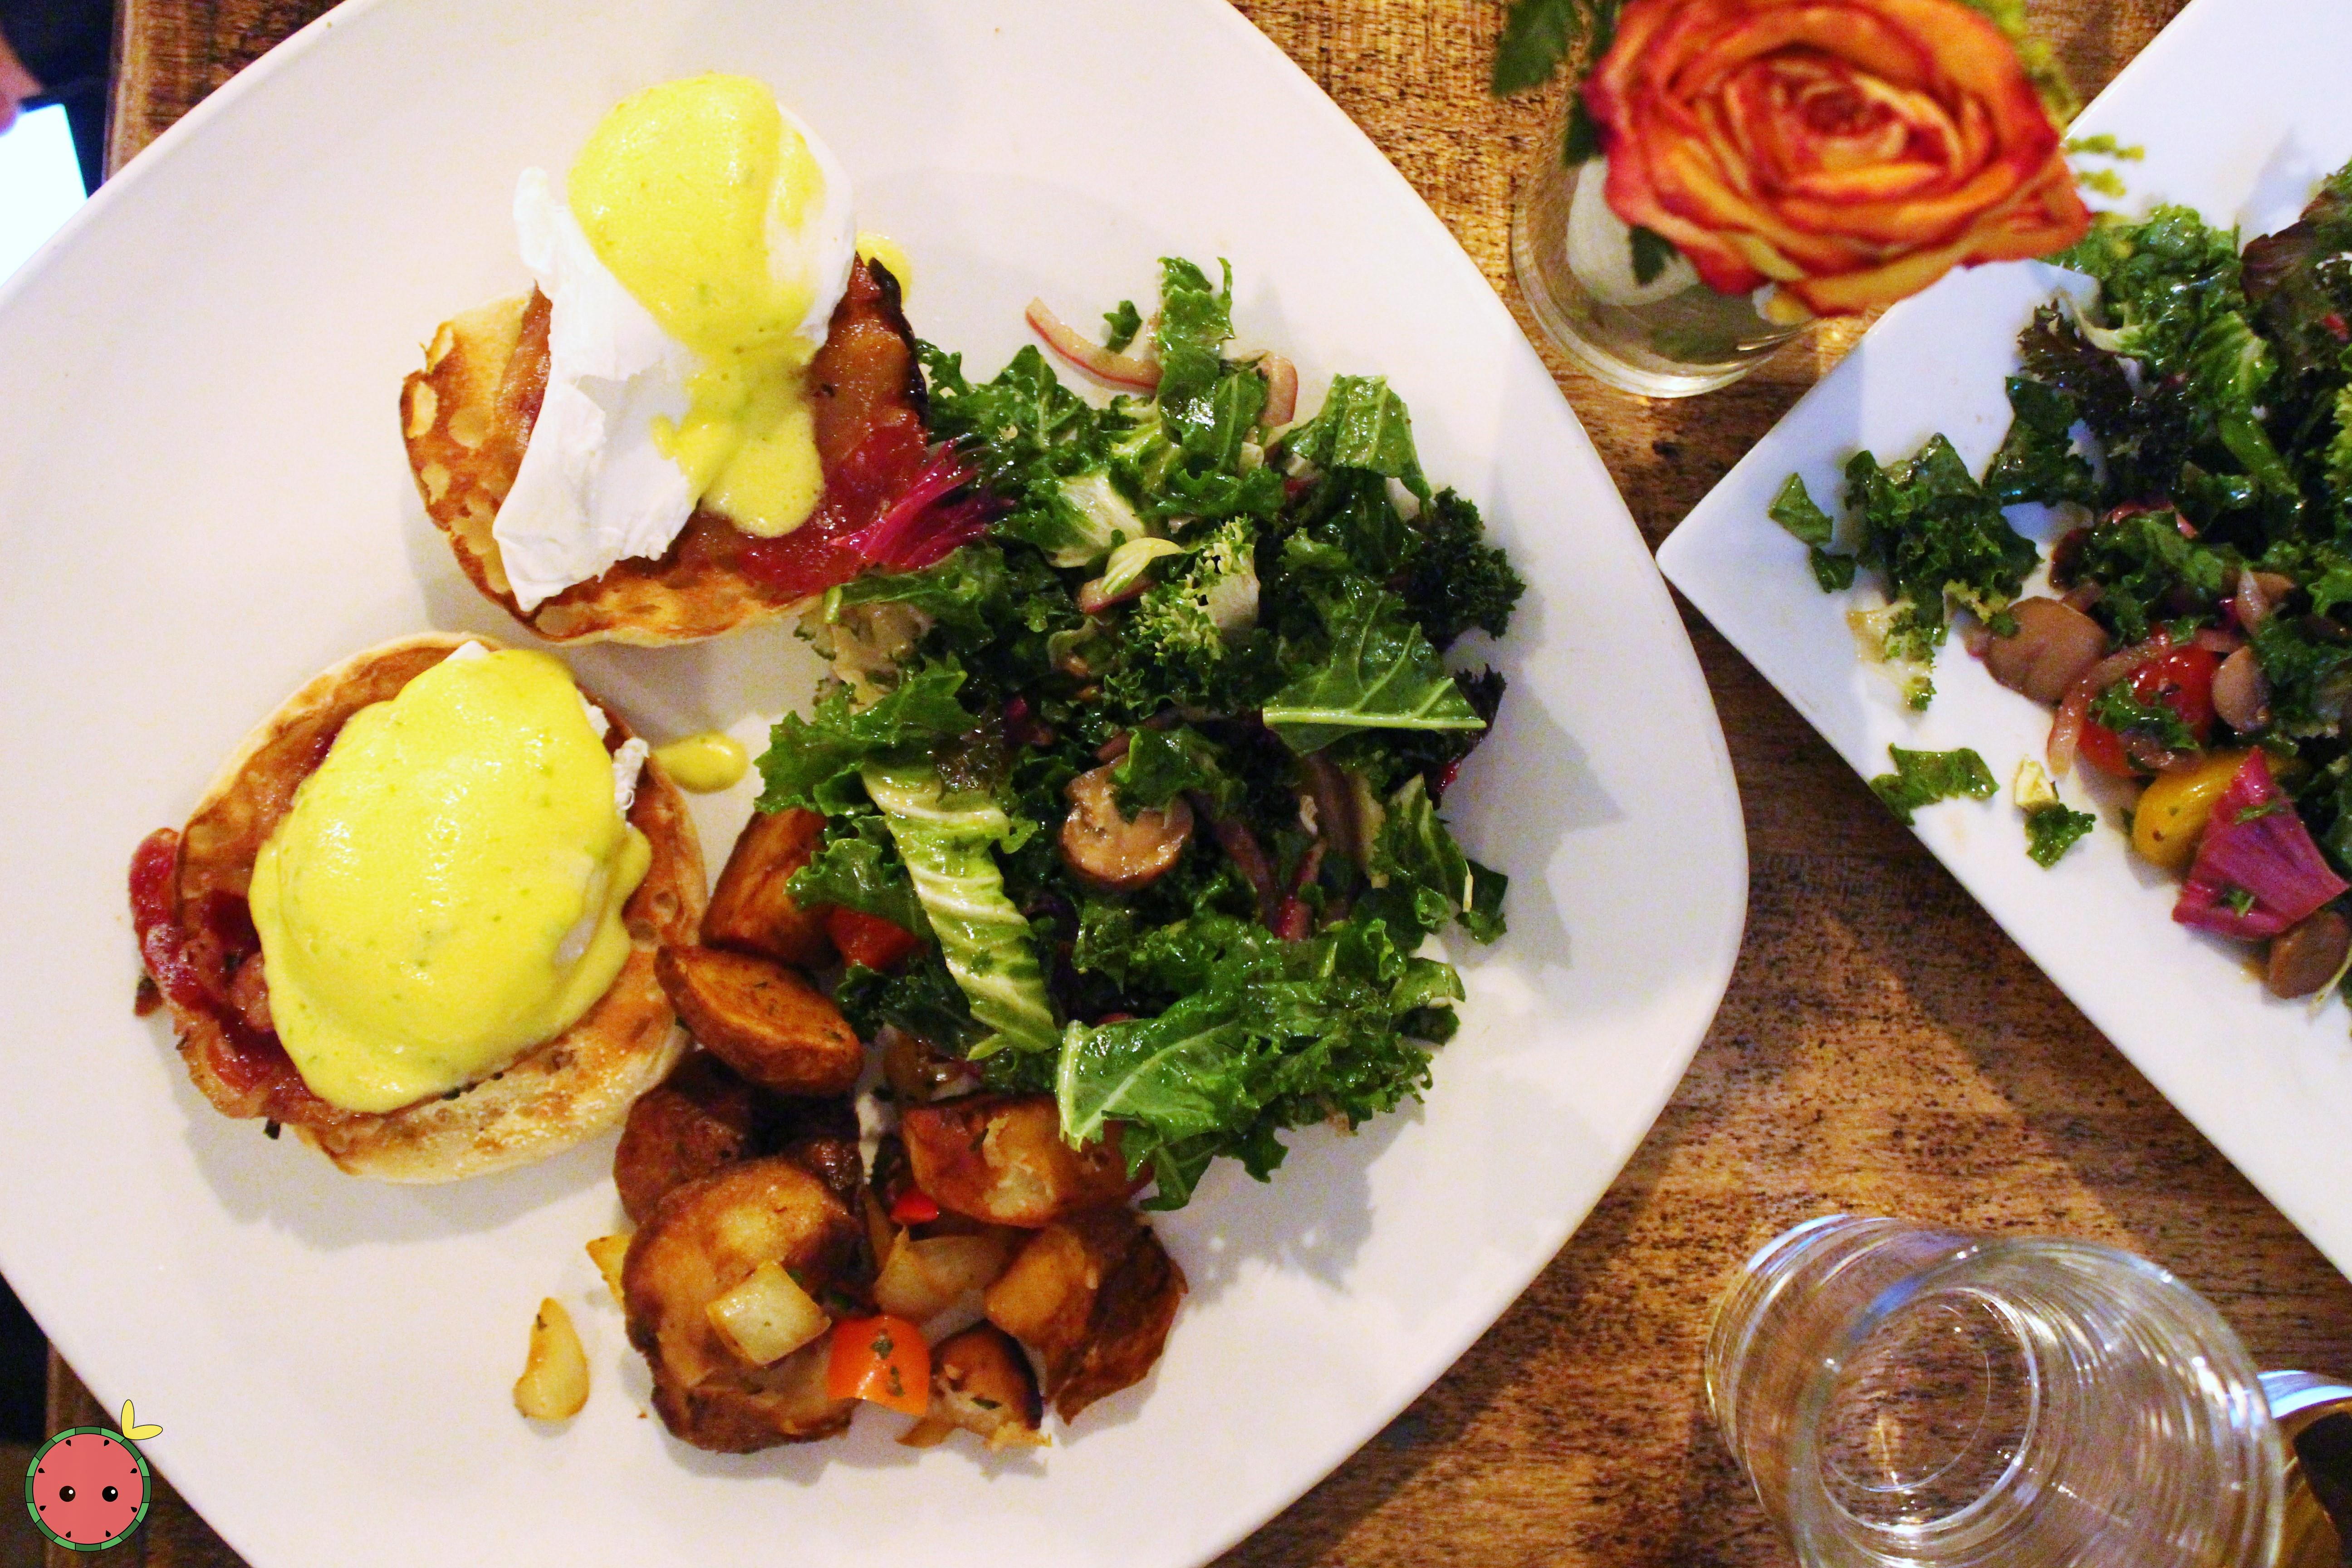 Whitman Benedict - Poached eggs, pancette, spicy cilantro hollandaise, English muffin